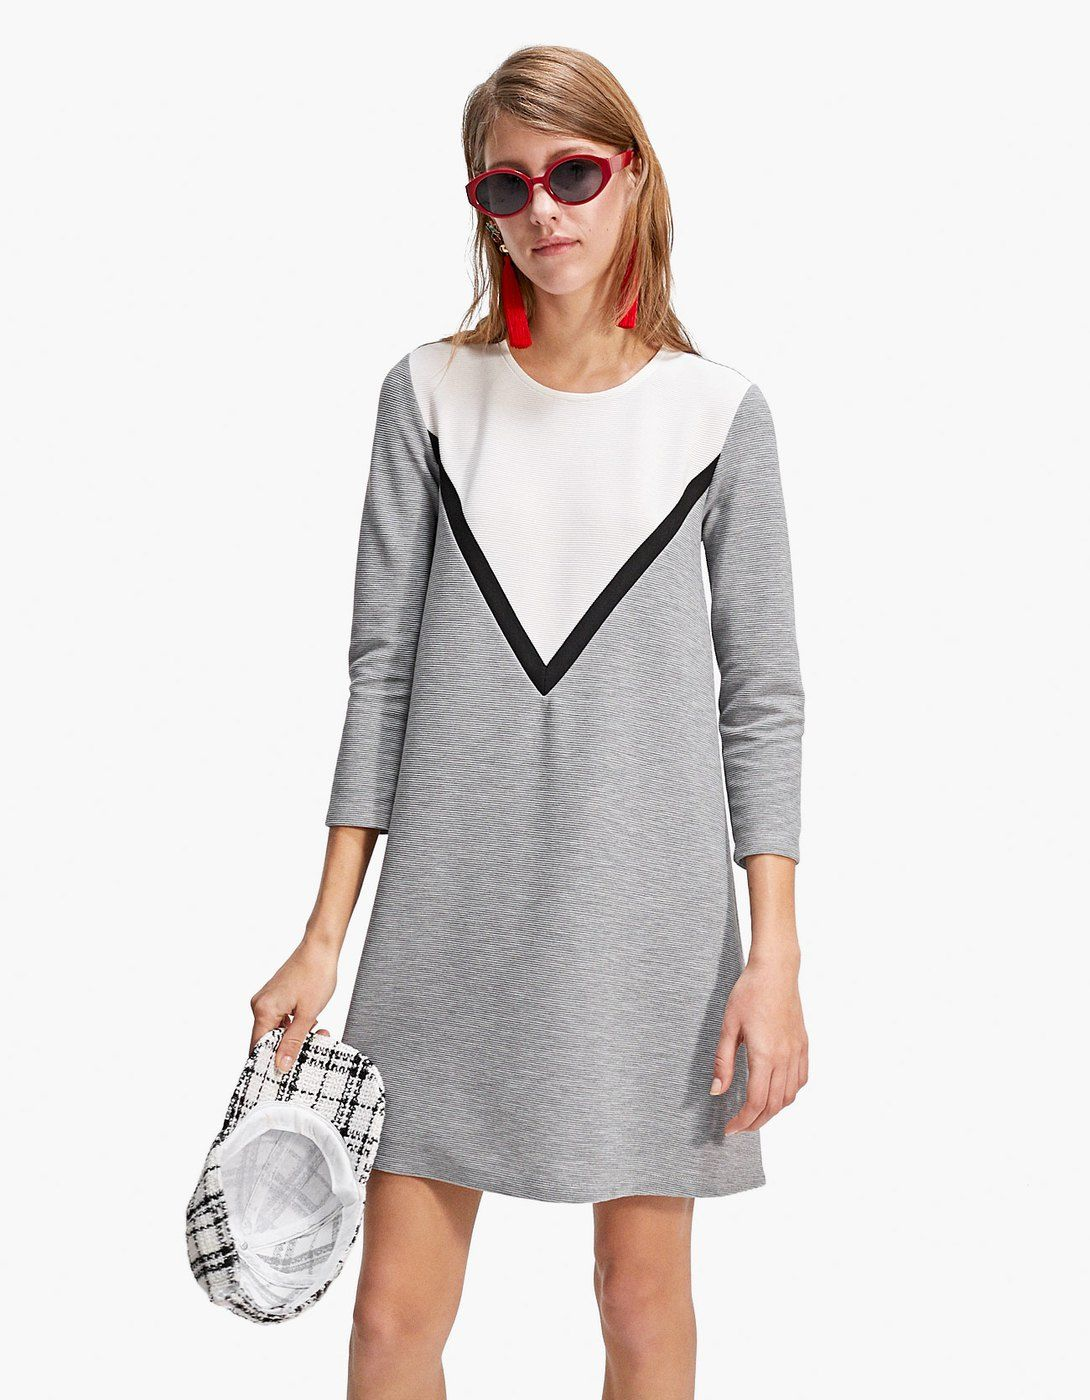 colour block dress with 3/4 length sleeves - dresses and